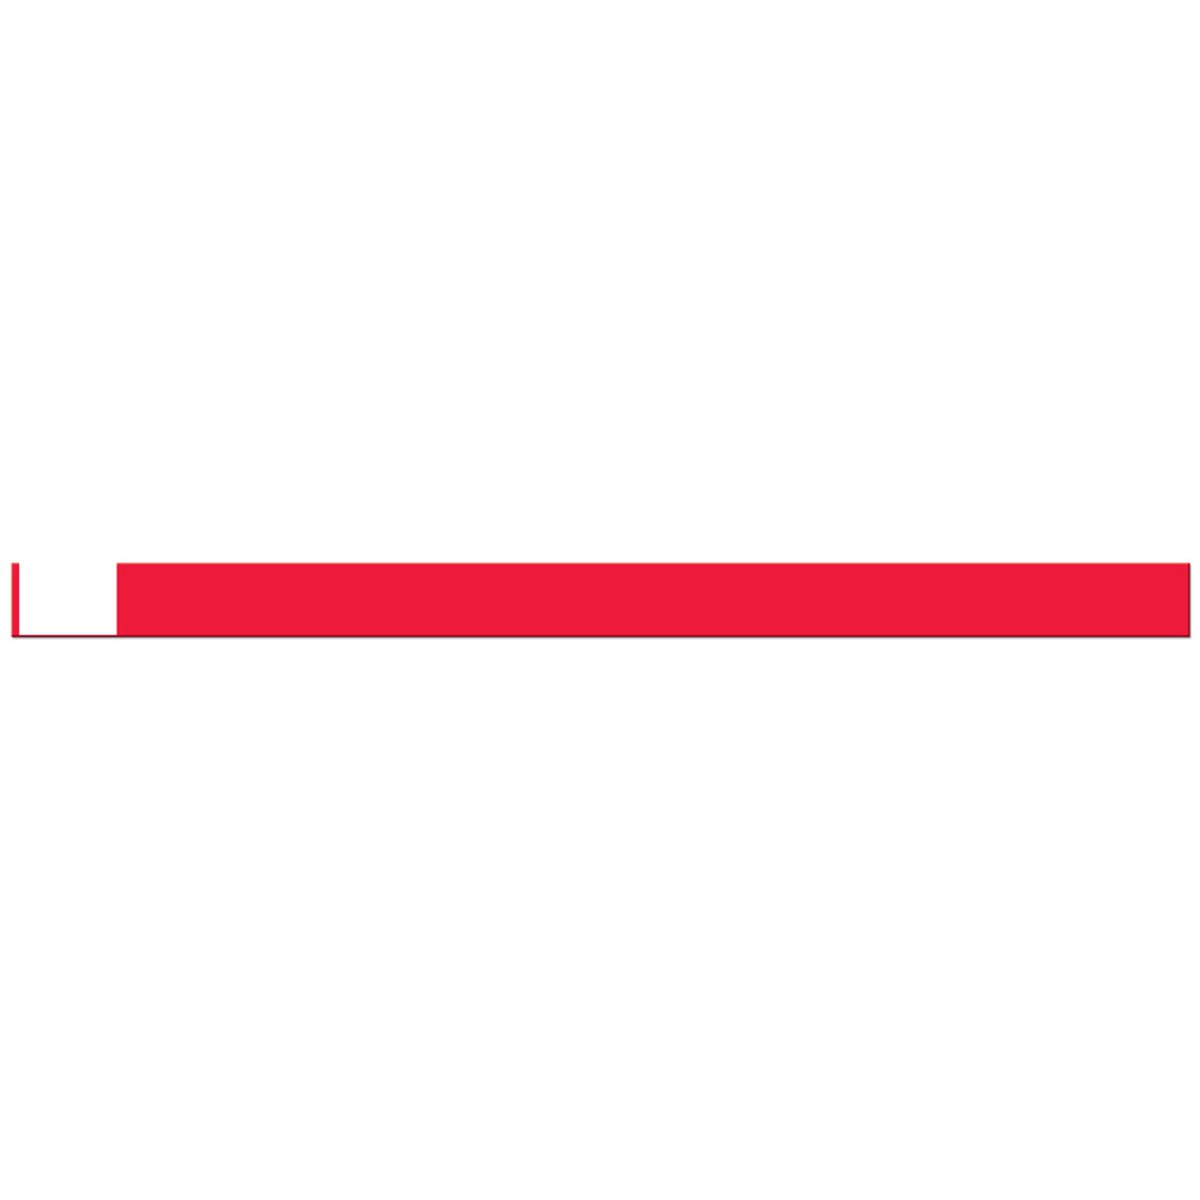 TABBAND WBW710-25R1 Write-On Wristband, Poly Adhesive Closure, 5/8'' x 10'', Adult, Red (Pack of 500)